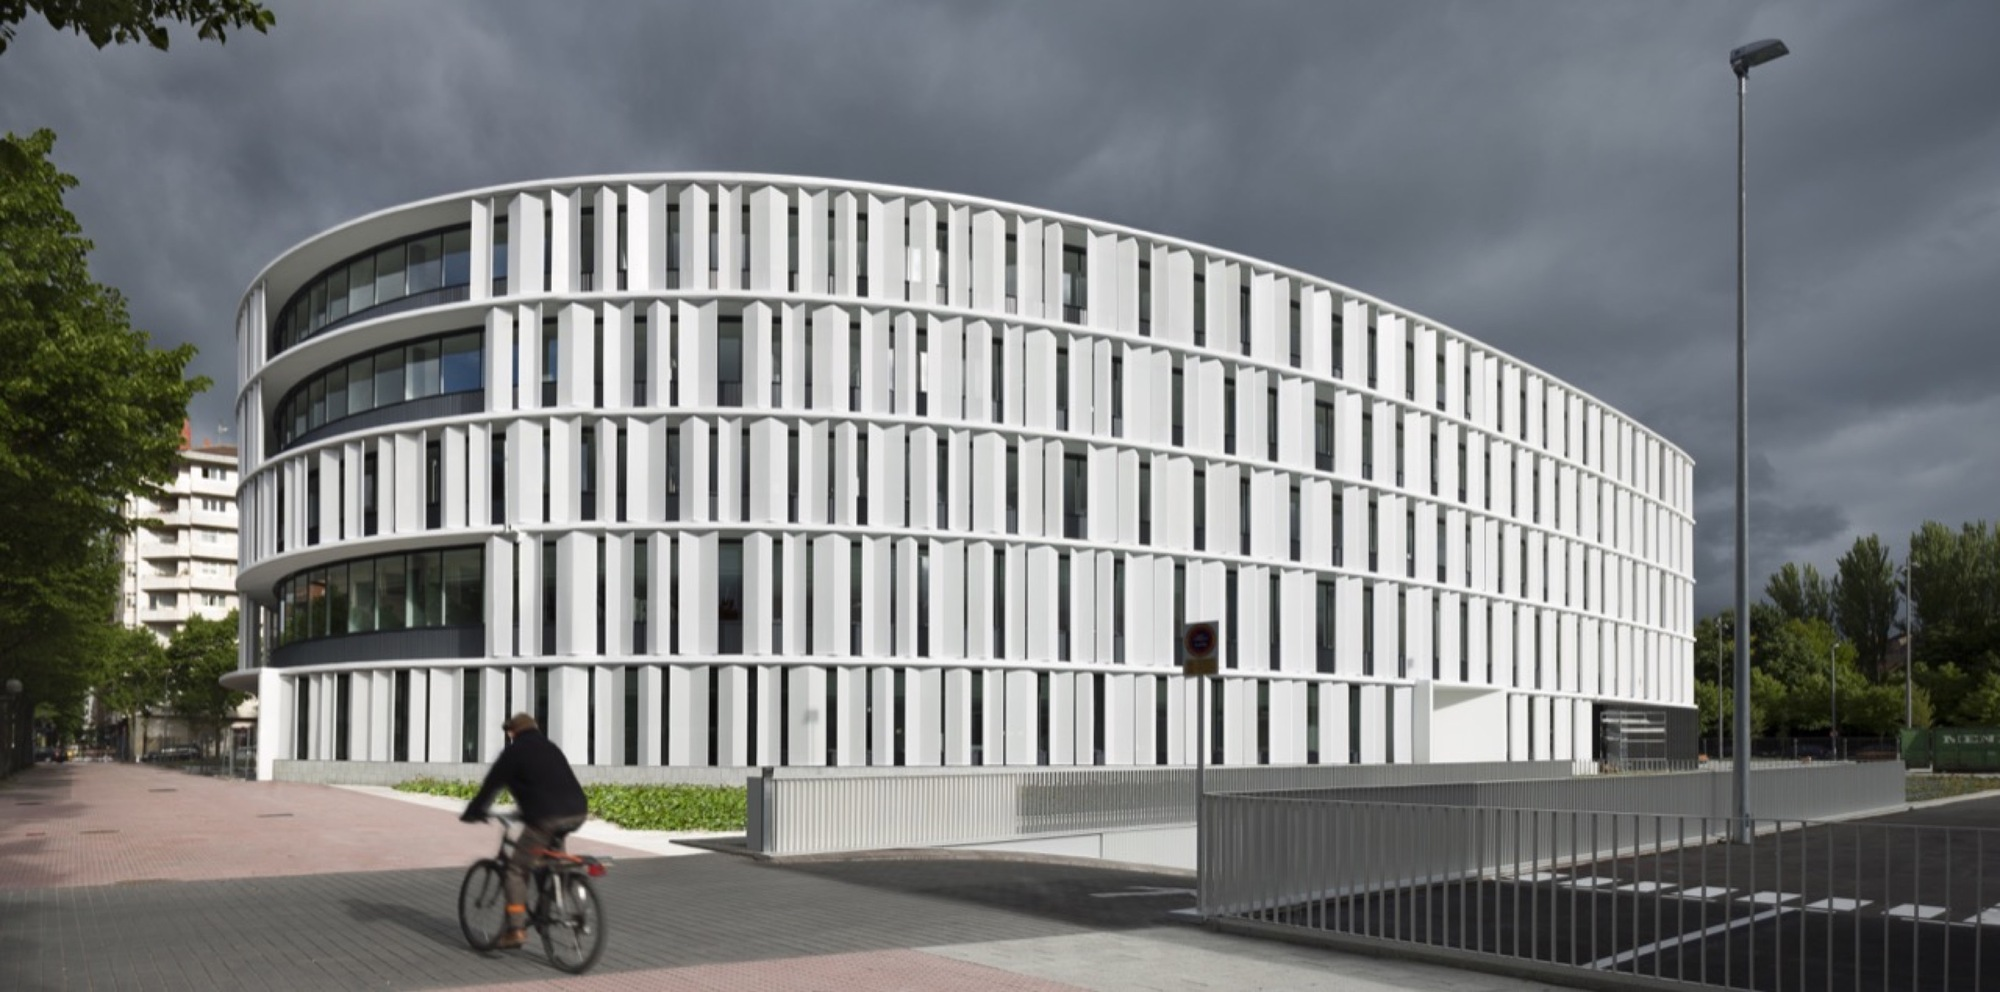 Vitoria gasteiz town hall offices idom archdaily for Oficina de turismo de vitoria